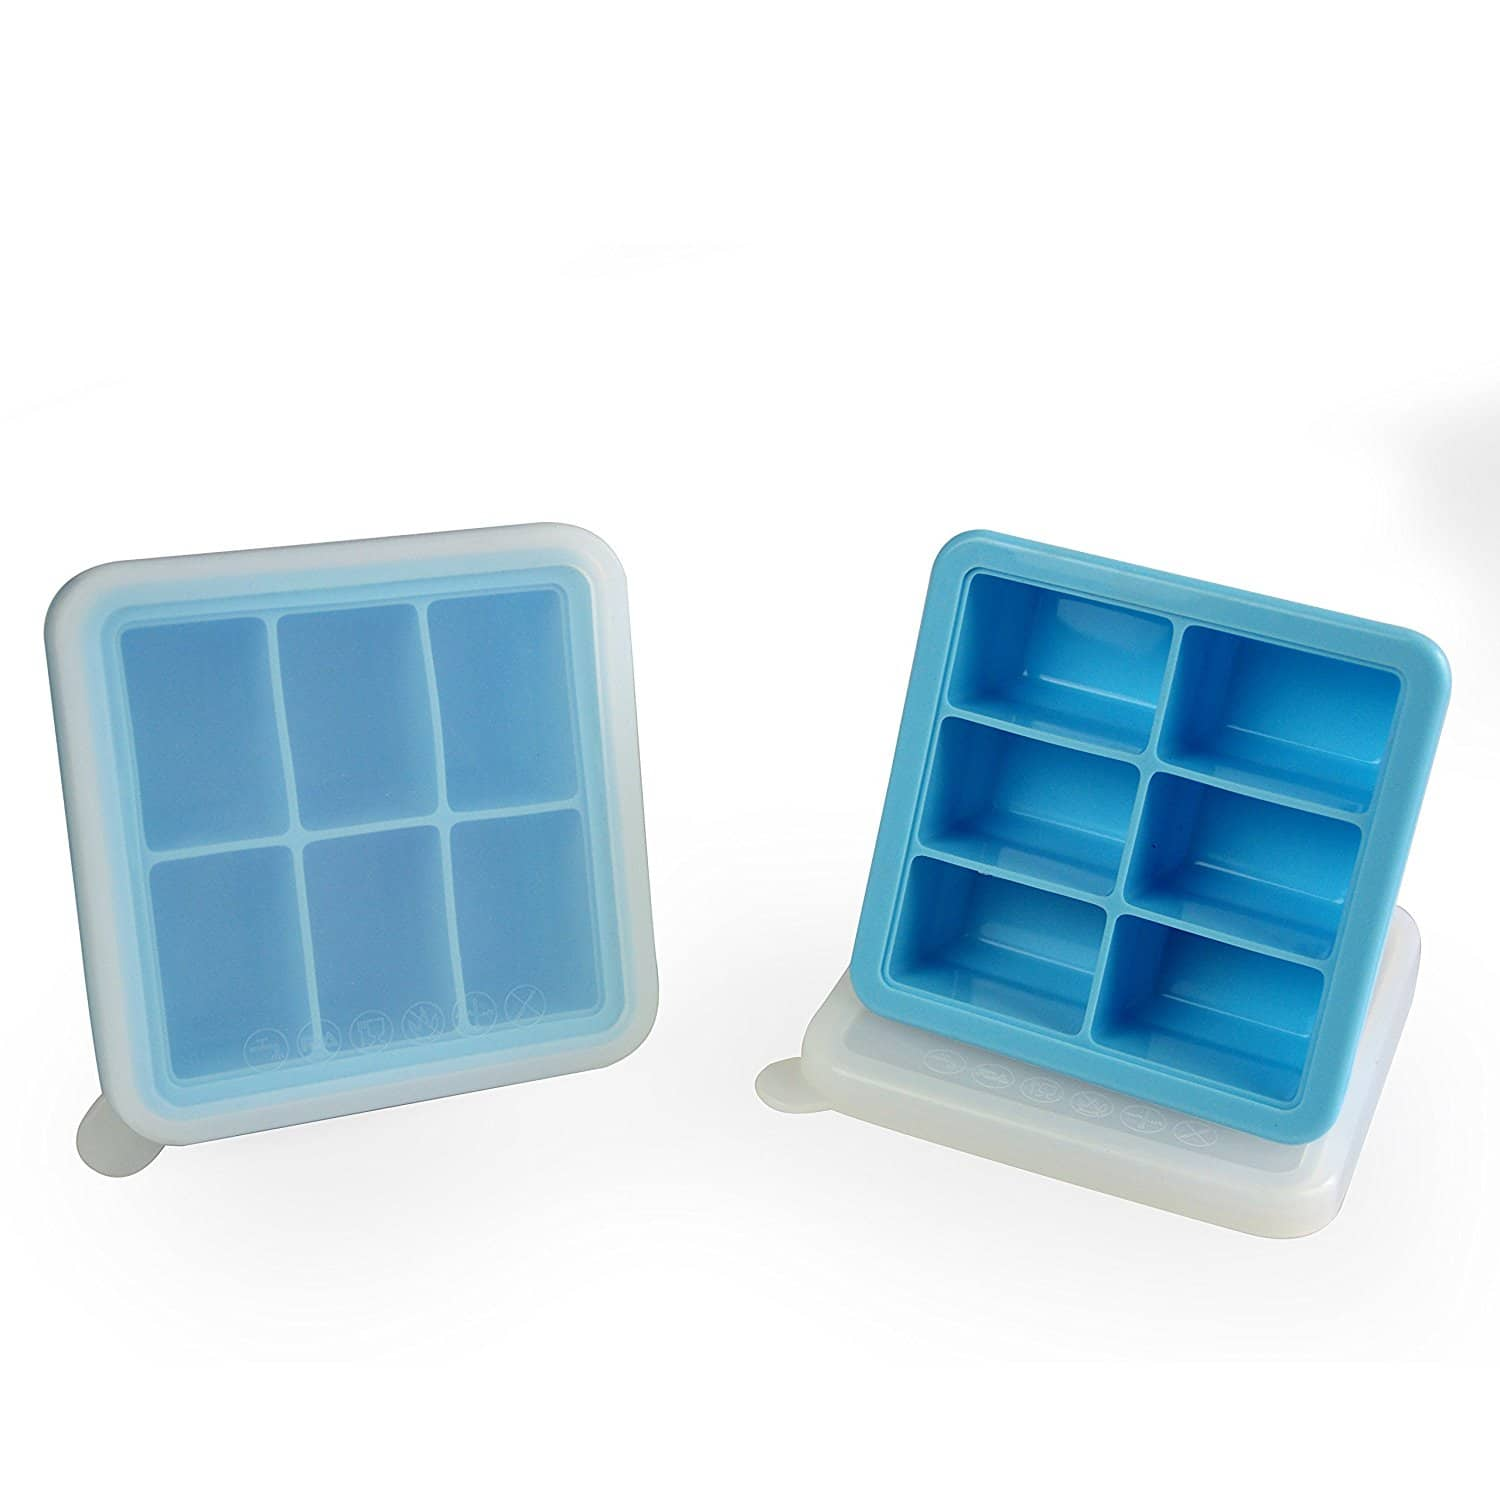 6 Cube Premium Silicone Ice Cube Tray with Lid, Blue, 2 Set for $9 @Amazon